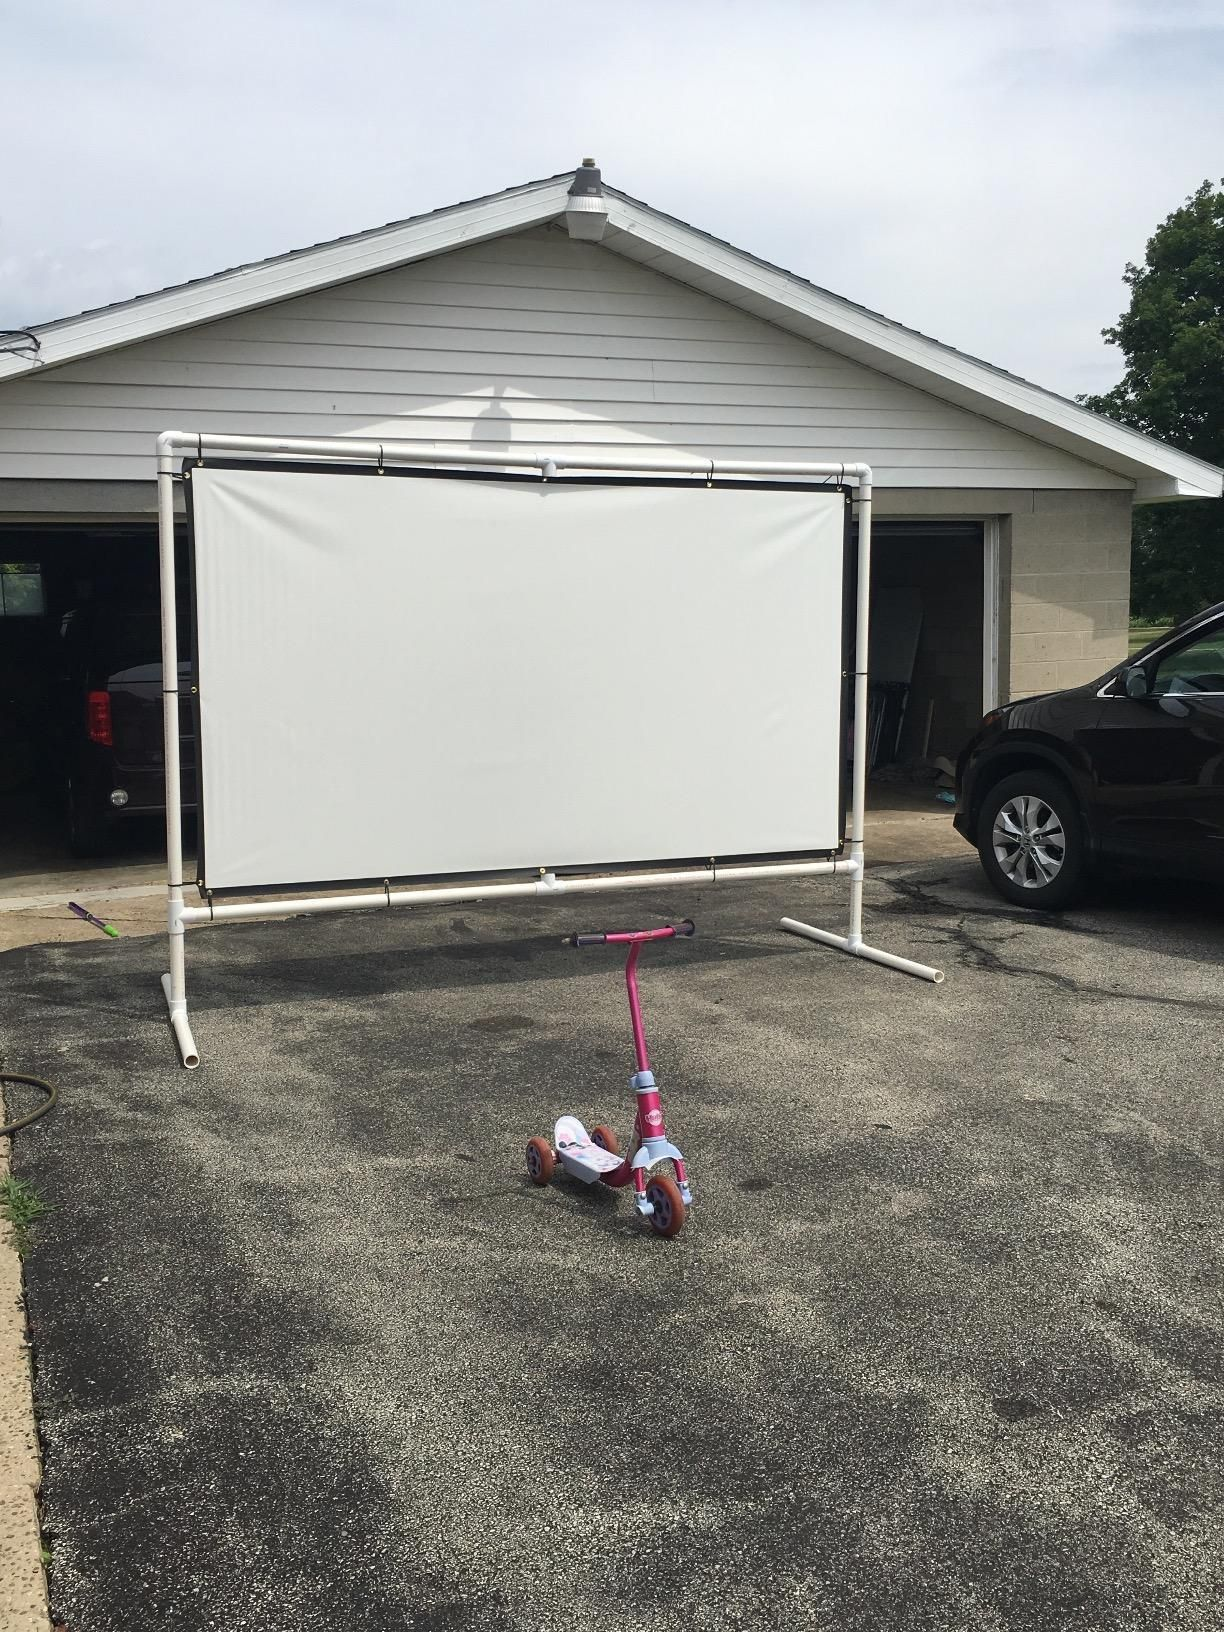 Amazon Com Excelvan Outdoor Portable Movie Screen 120 Inch 16 9 Home Cinema Projector Screen Pvc Fab Home Cinemas Outdoor Projector Screens Outdoor Projector